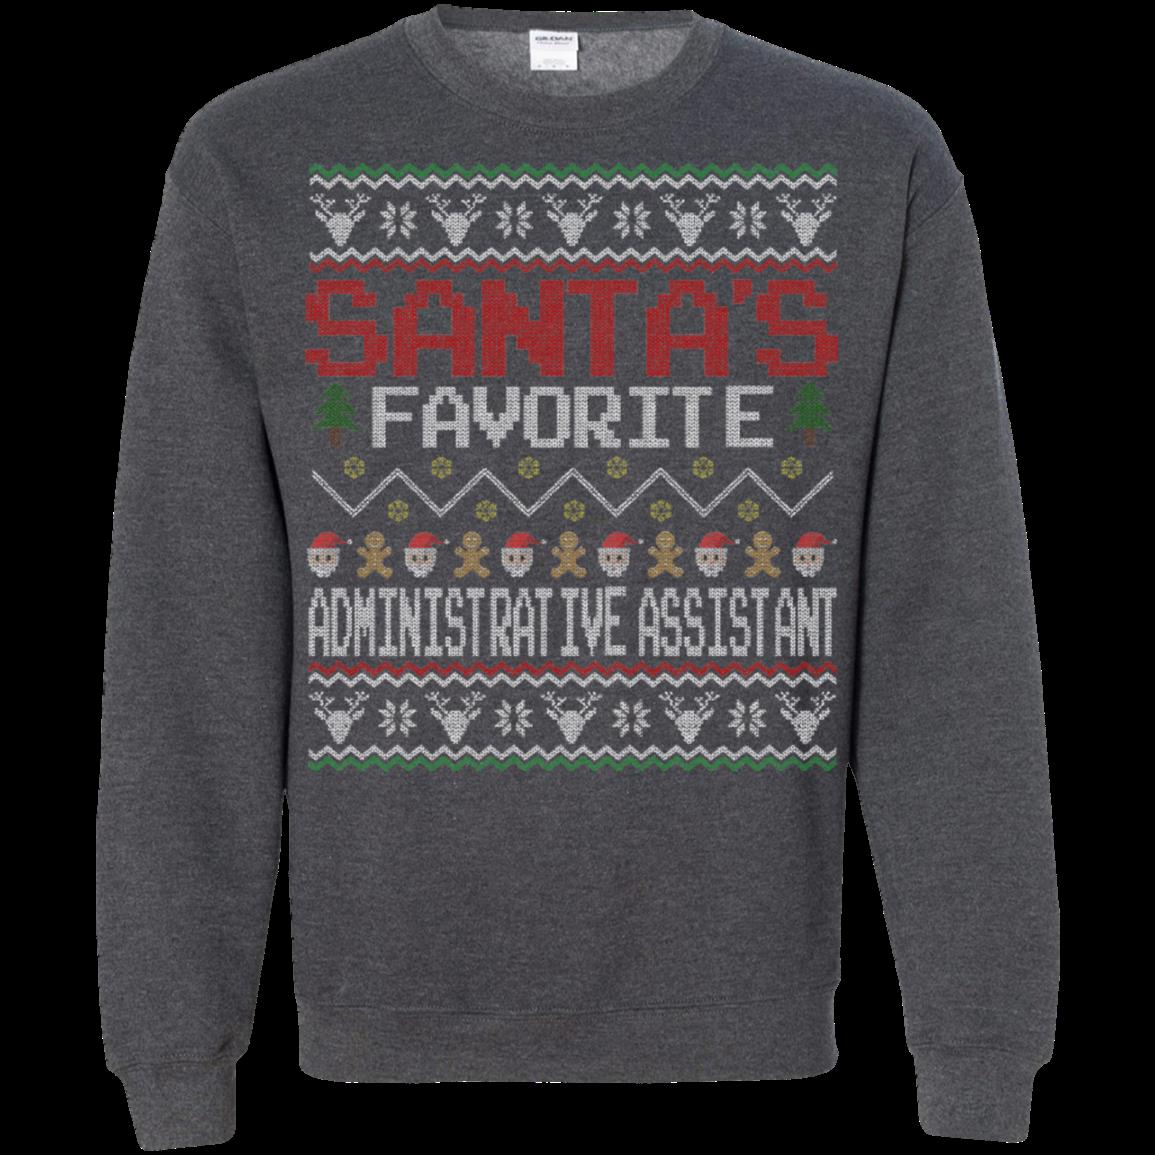 Administrative Assistant Christmas Ugly Sweater Shirts Santa Favorite 1